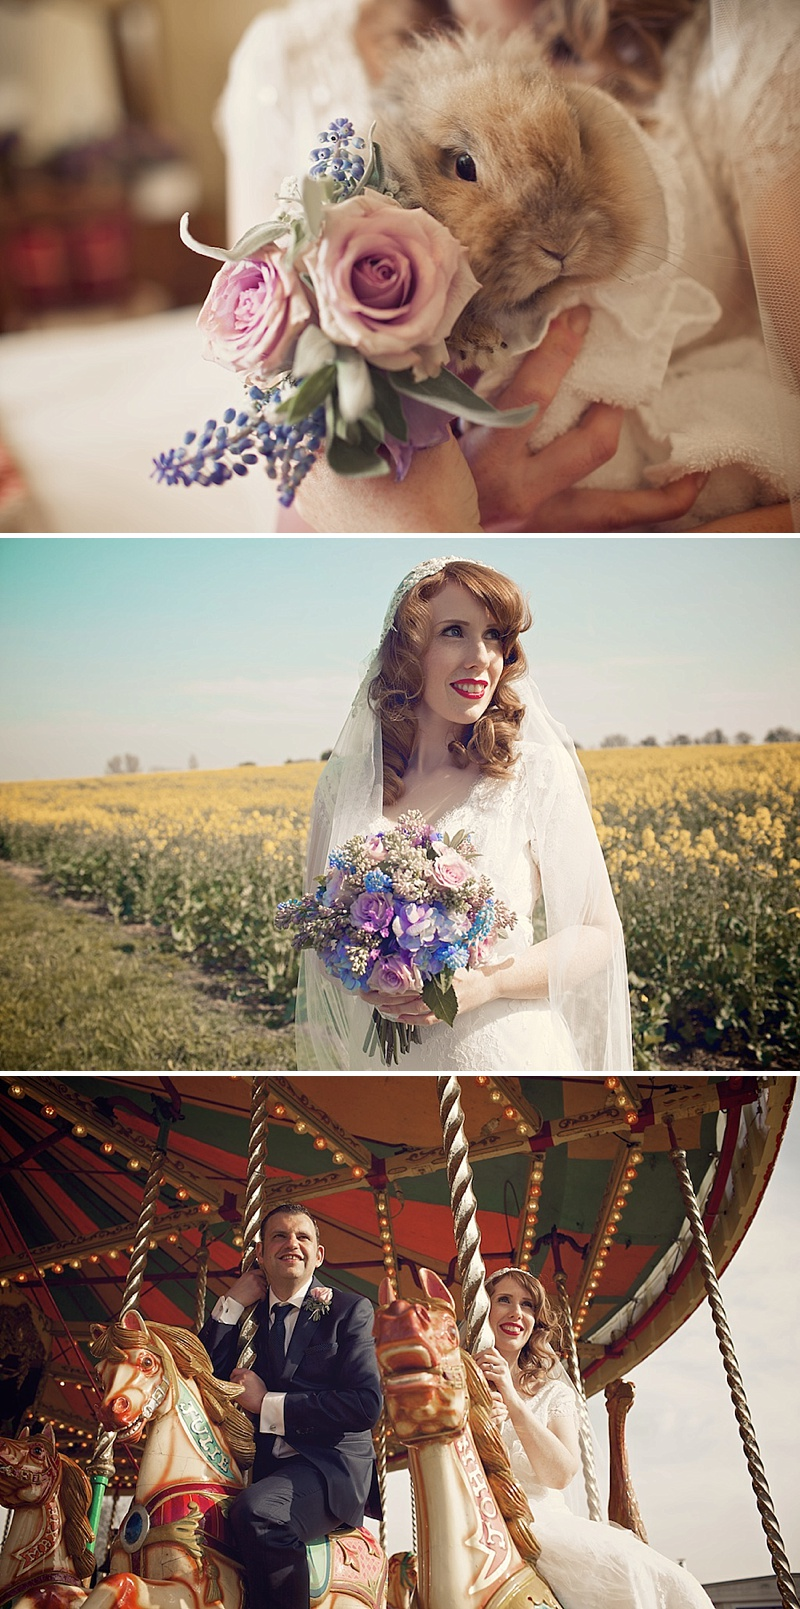 Vintage Wedding Inspired By The Carousel Scene From Mary Poppins With A Mint Green Lavender And Gold Colour Scheme With Bride In Gala By Cymbeline With Rachel Simpson Shoes 1 Practically Perfect In Every Way.